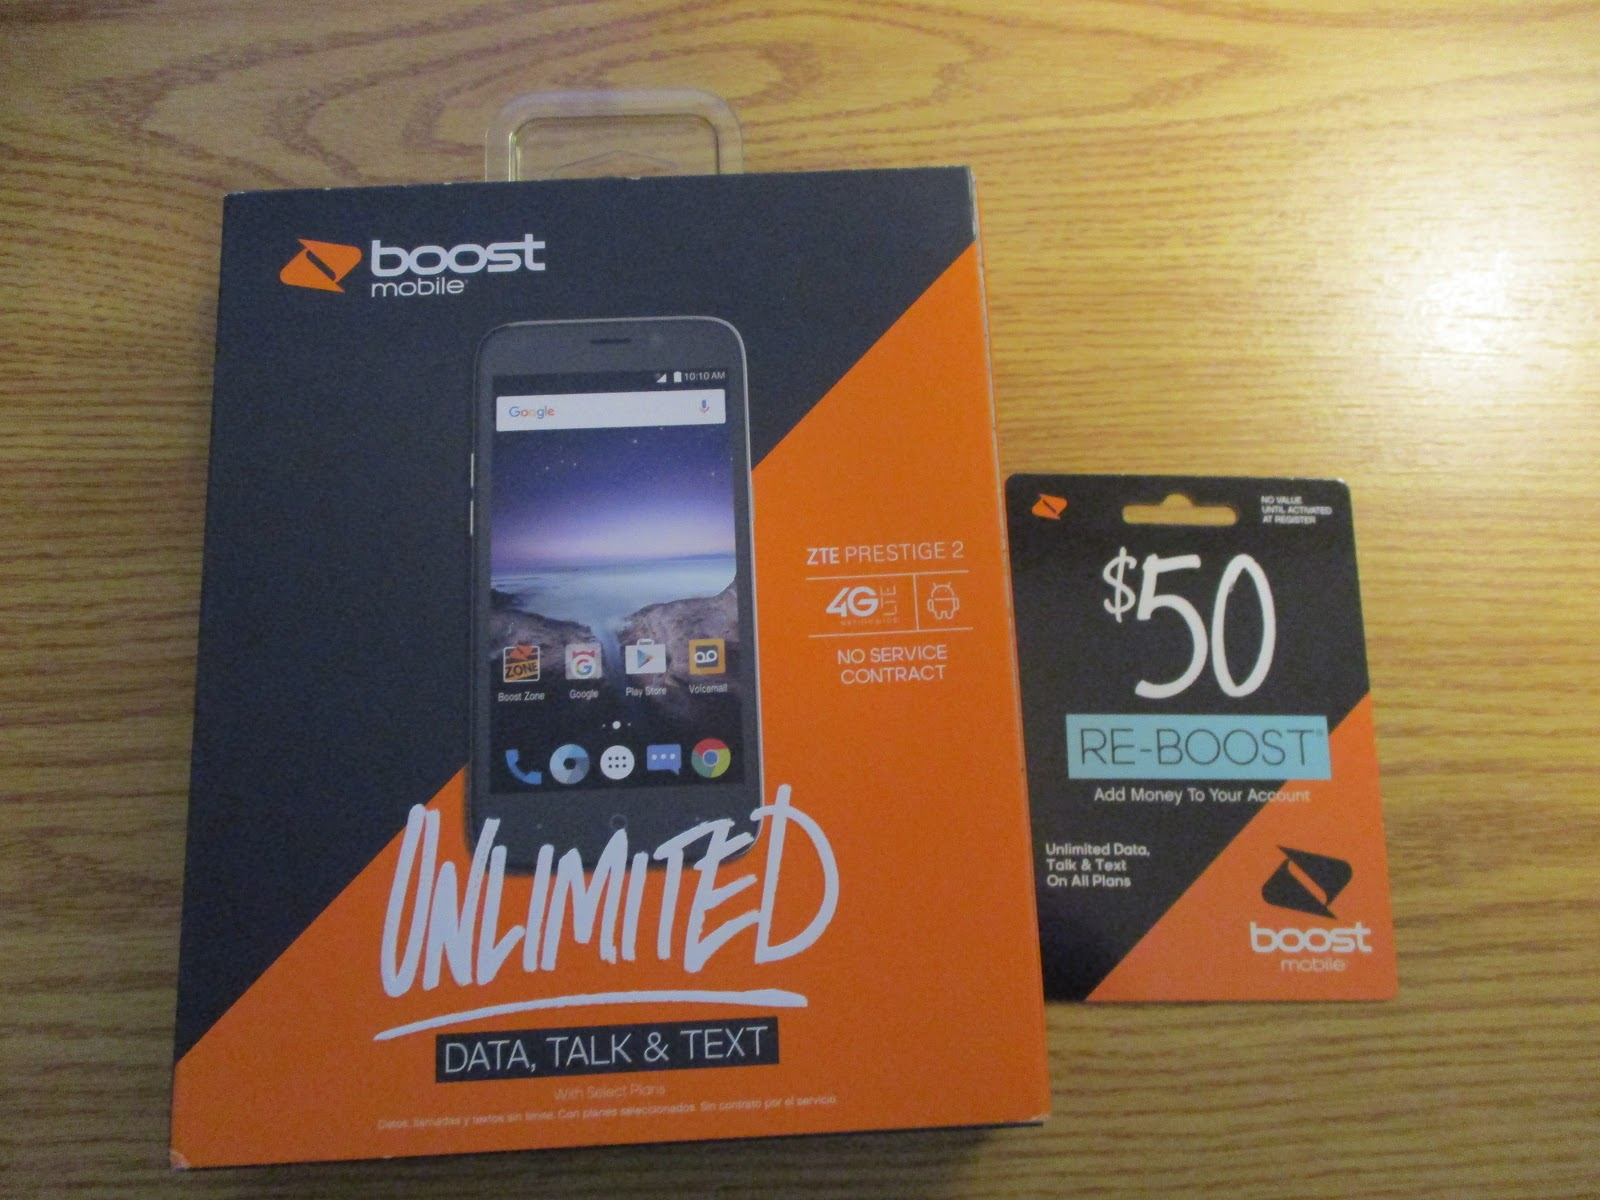 My Boost Mobile Account